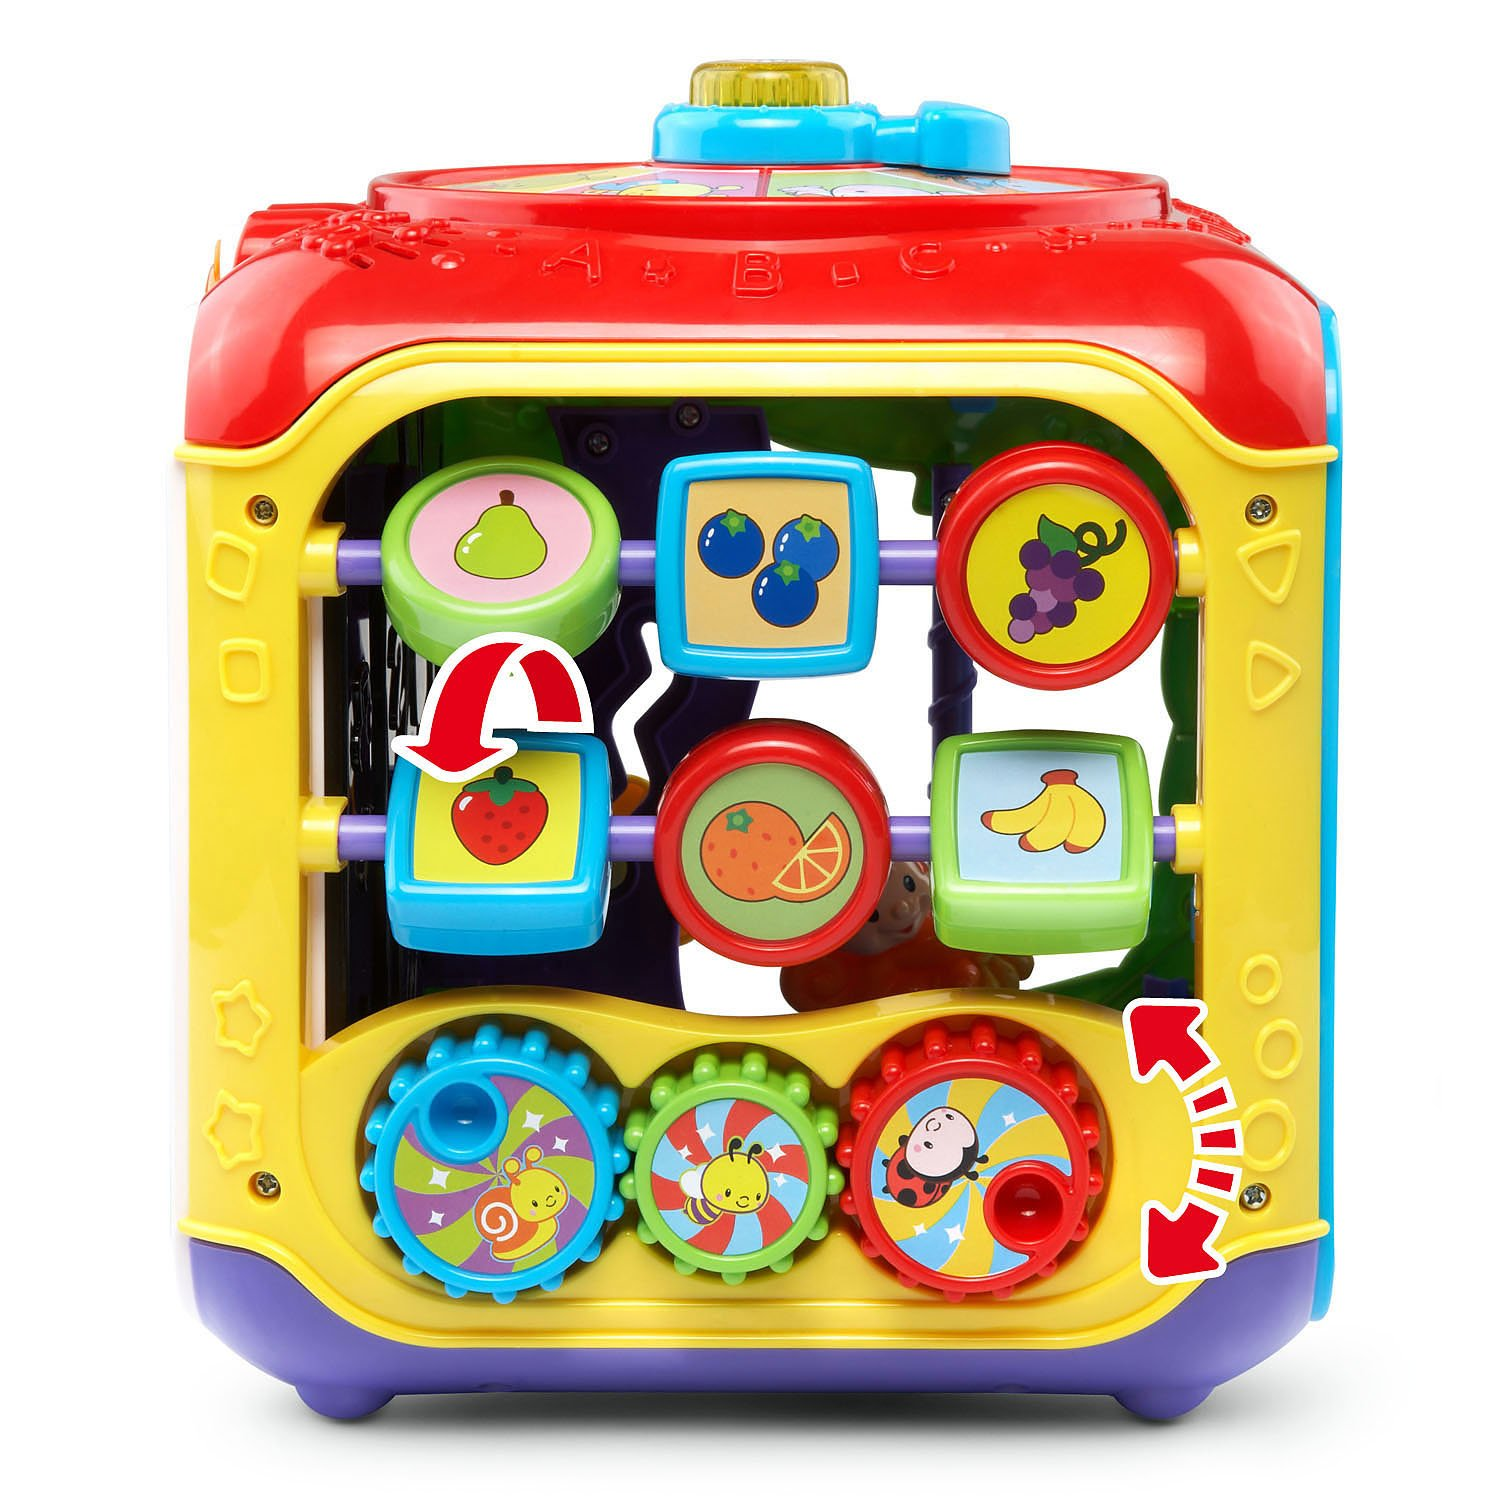 Amazon VTech Sort & Discover Activity Cube Toys & Games